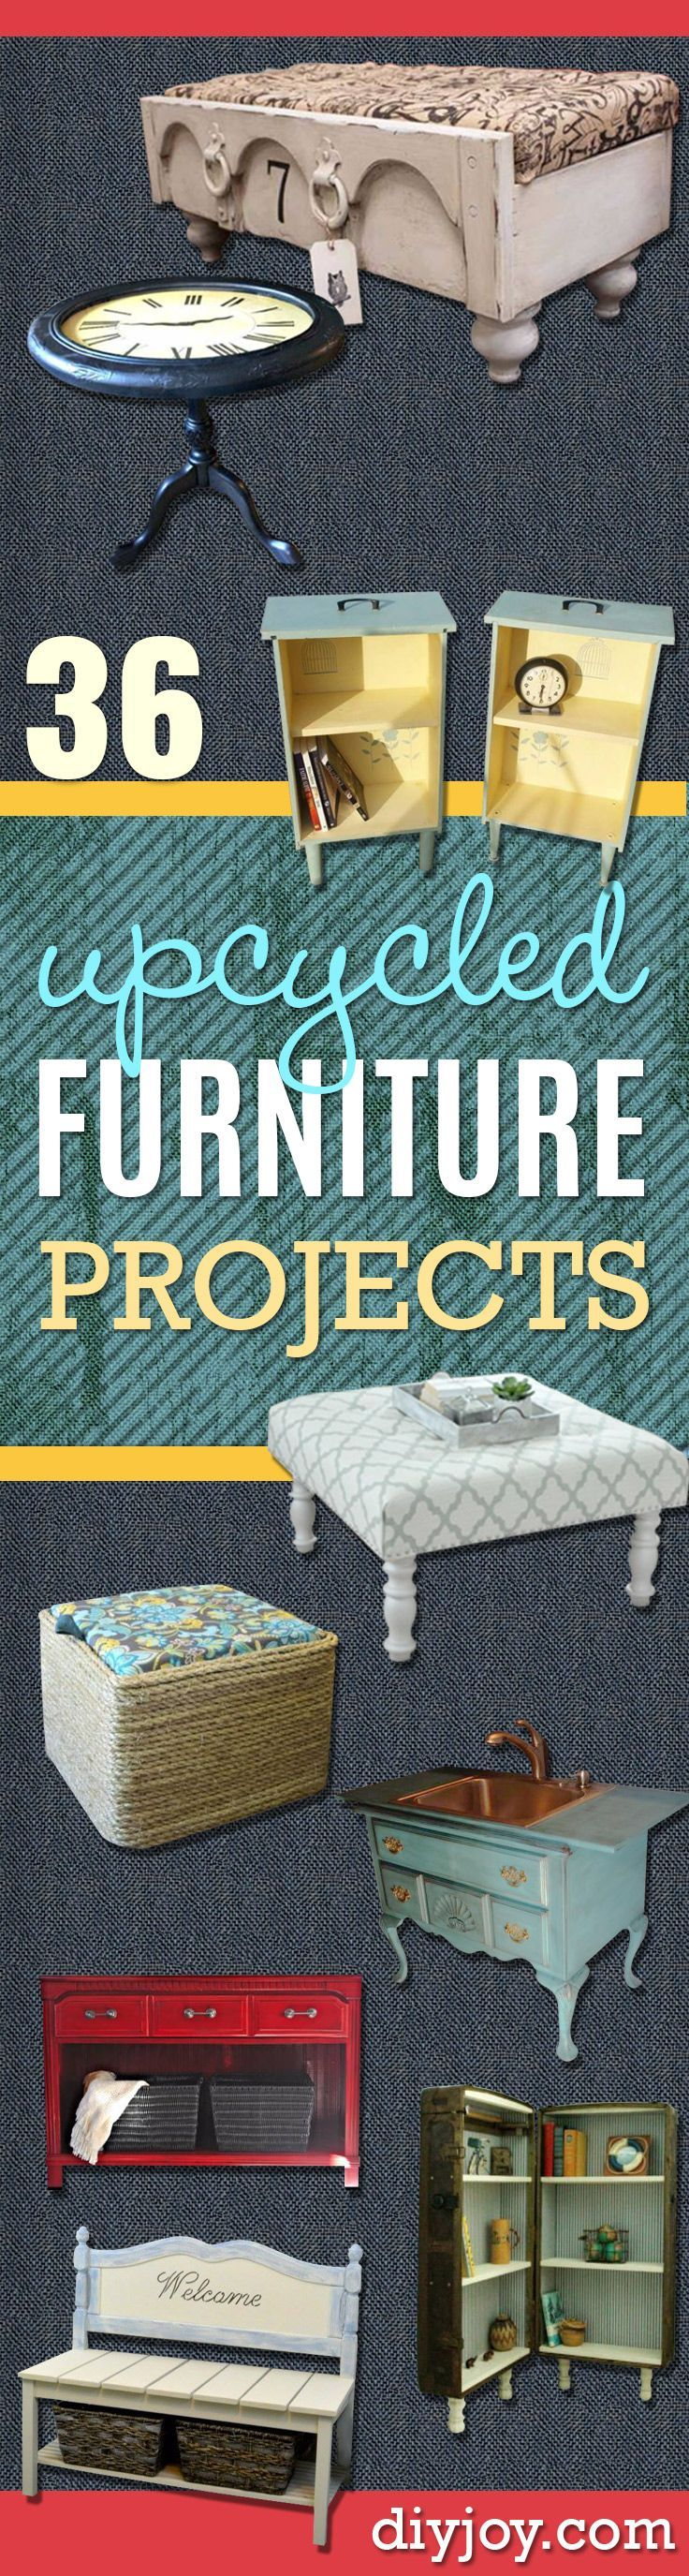 Upcycled Furniture Projects - Repurposed Home Decor and Furniture You Can Make…